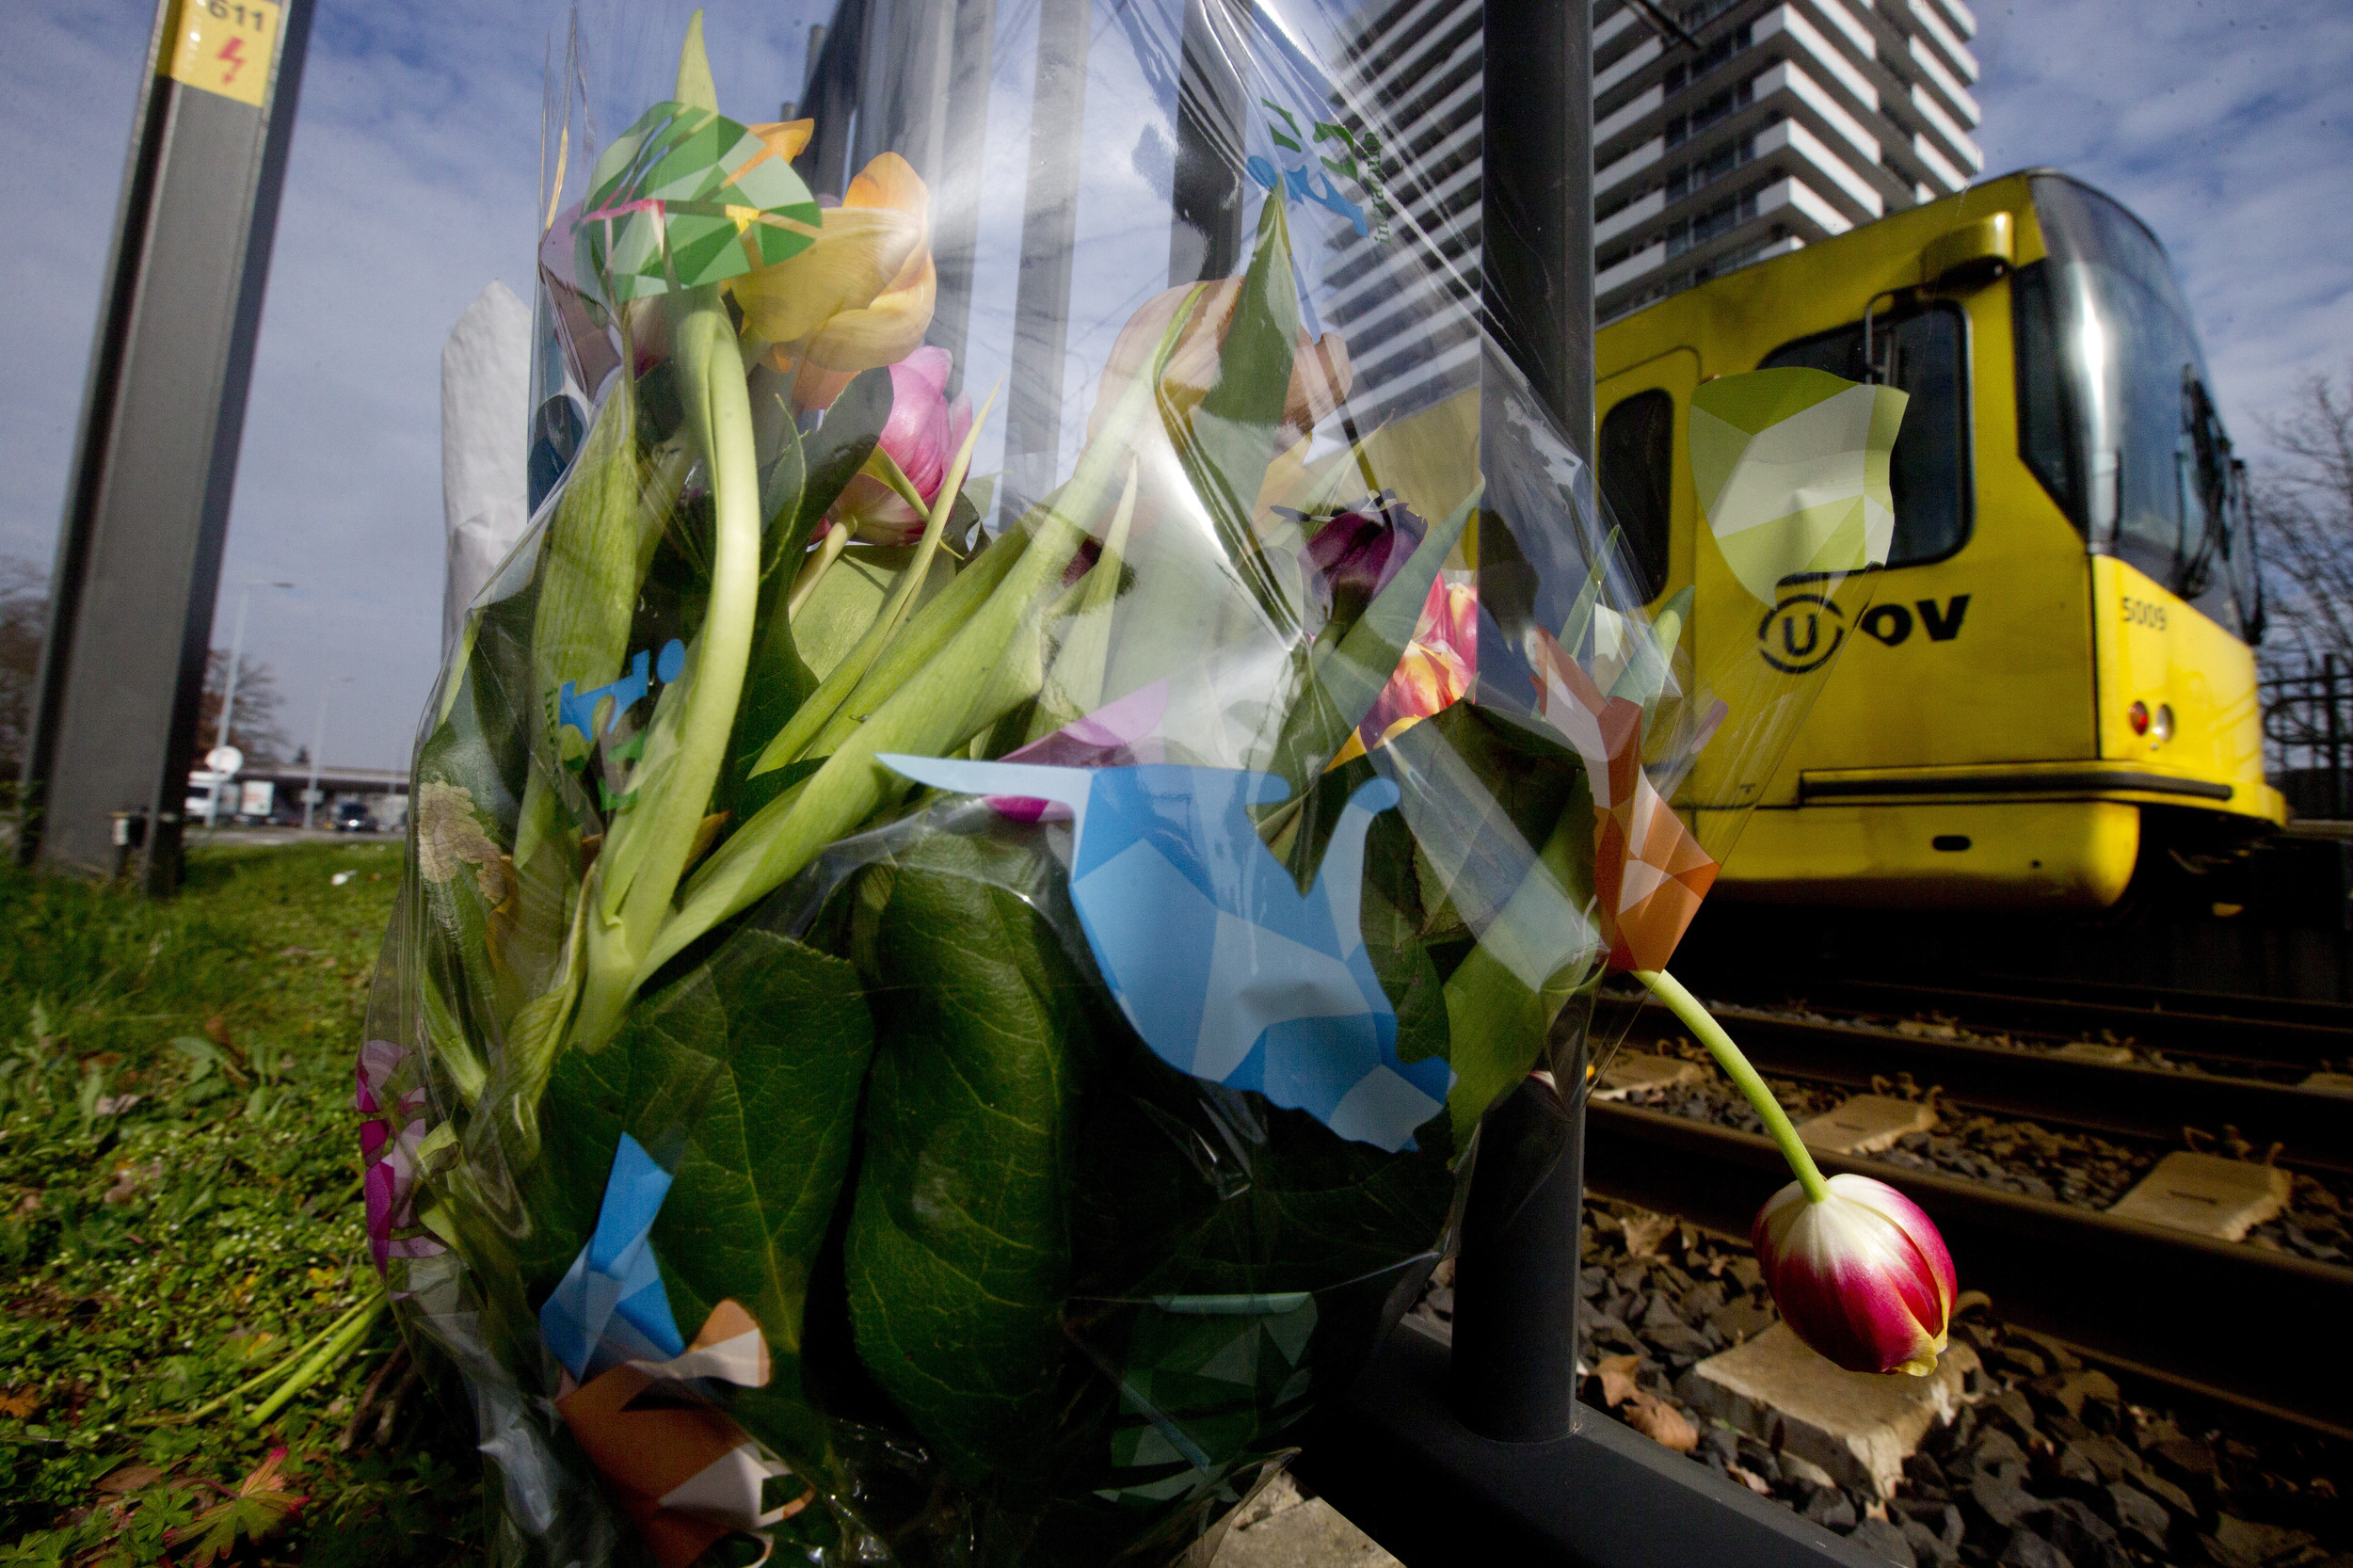 Dutch Terror Trial Starting For Deadly Utrecht Tram Shooting